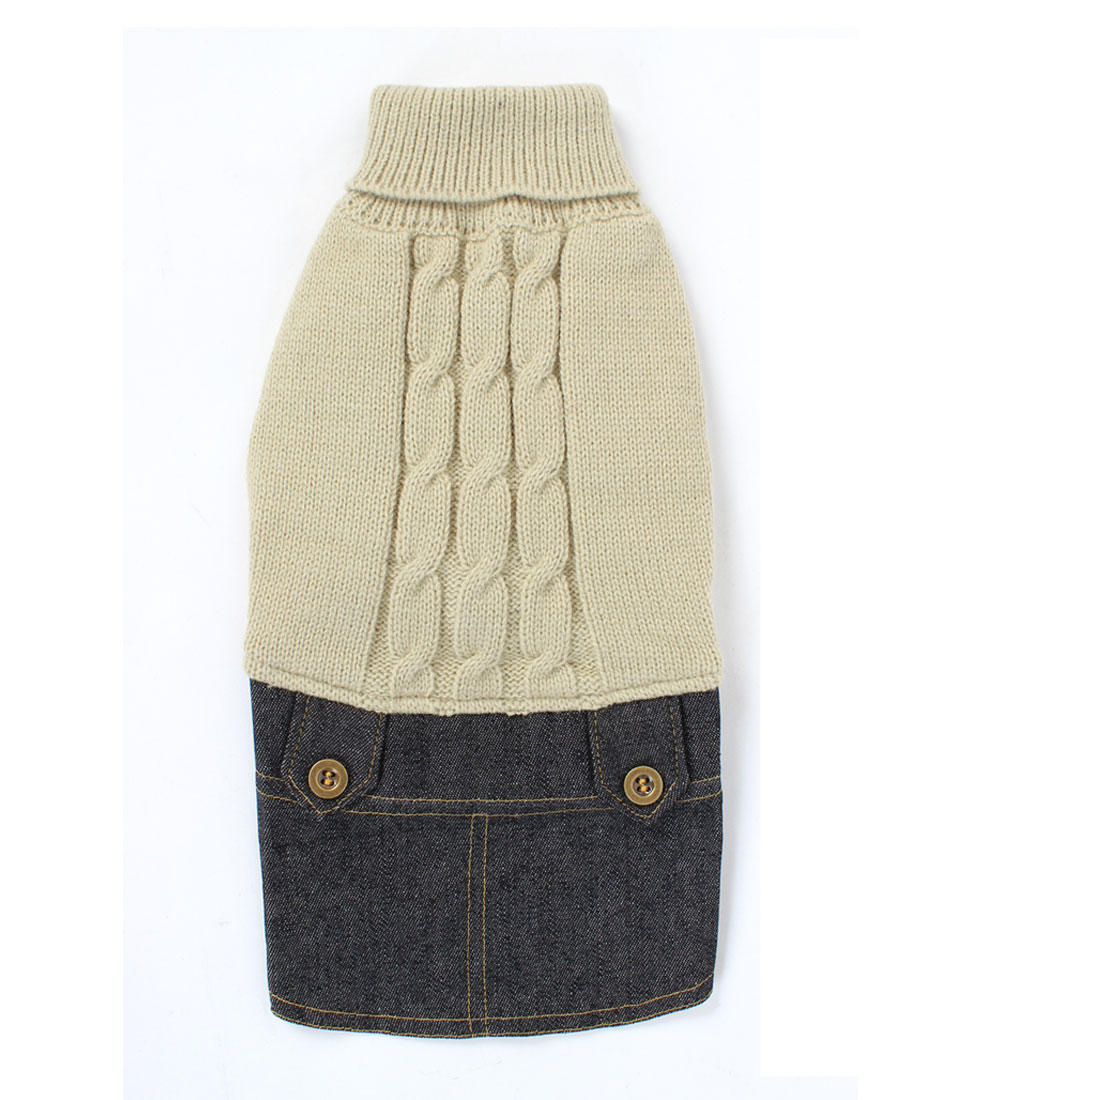 Pet Dog Winter Warm Sweater Knitwear Denim Dress Jeans Skirt Apparel Beige M